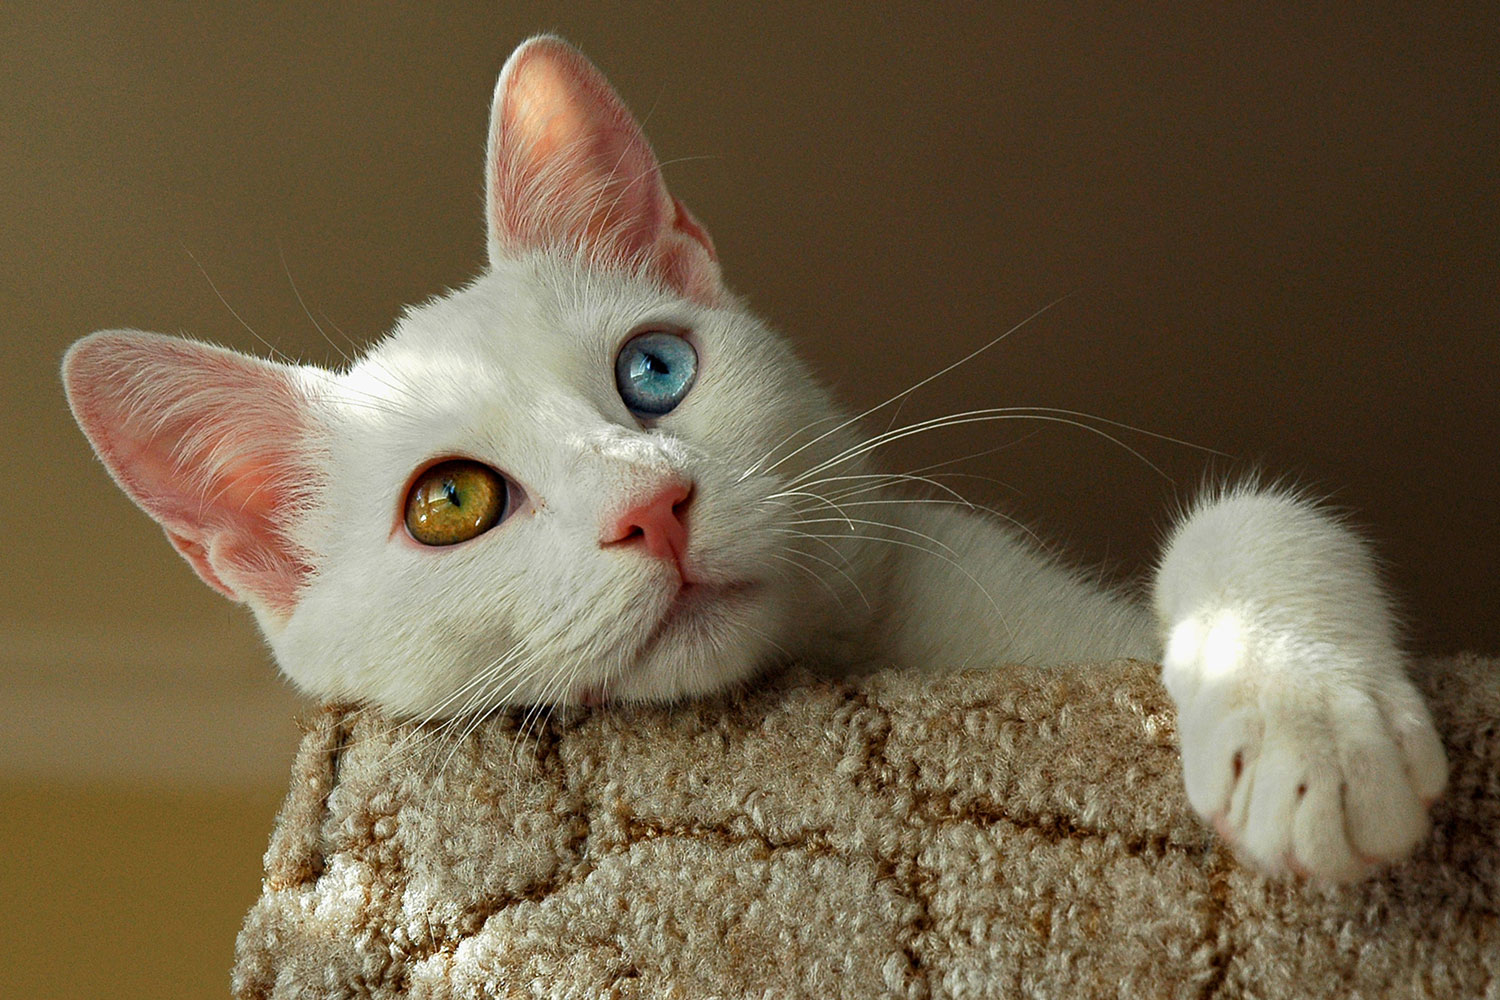 A white Turkish van cat with orange and blue eyes lying on the couch